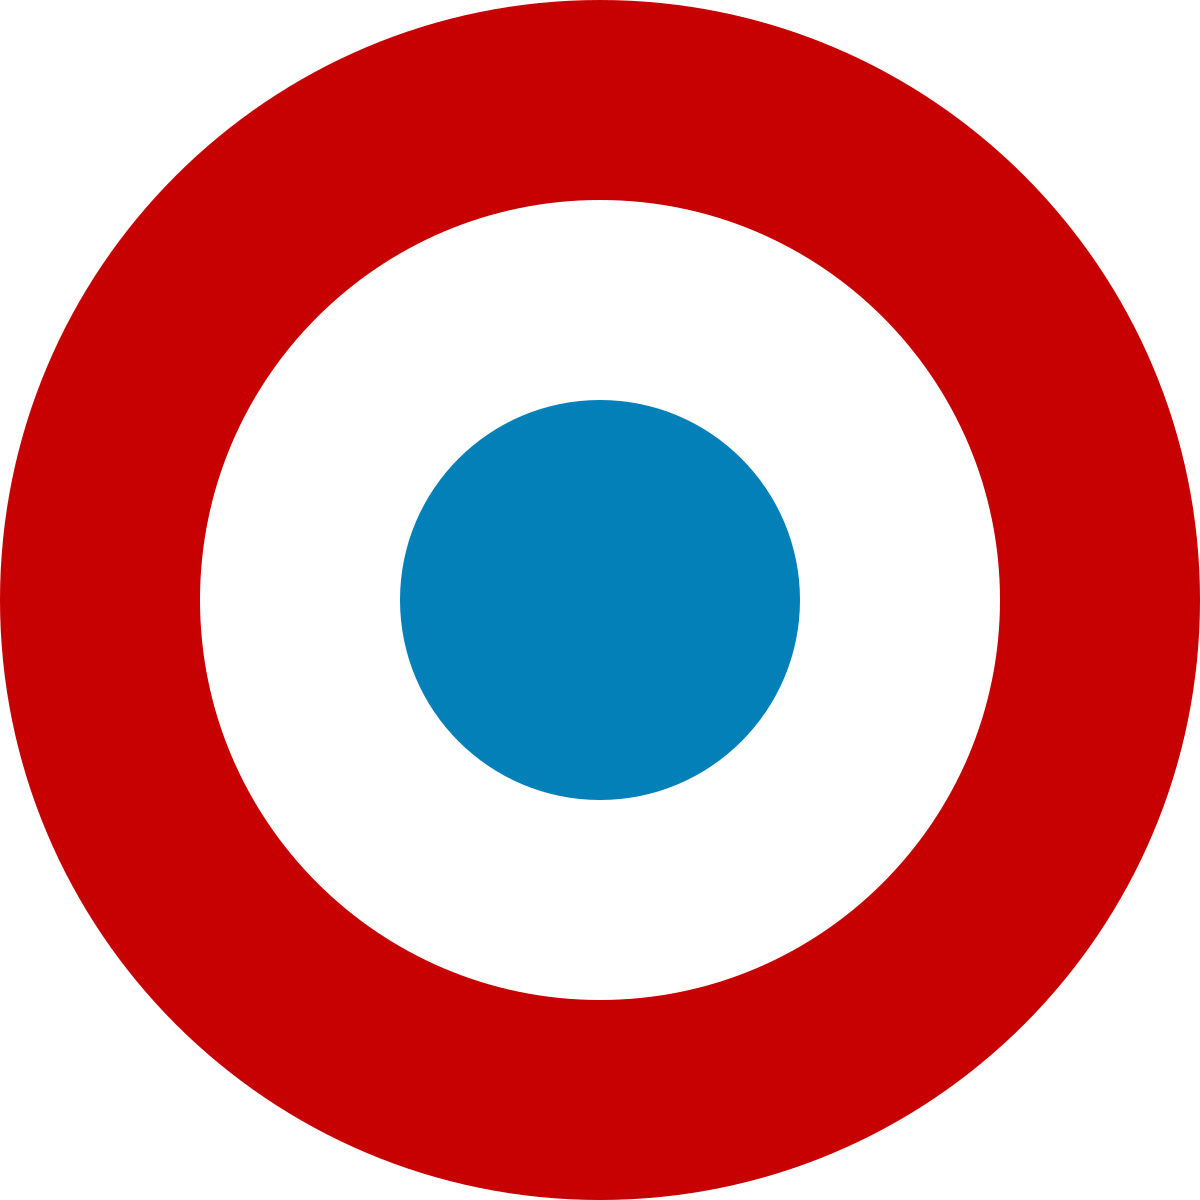 Nazi transparent roundel. History of the arm